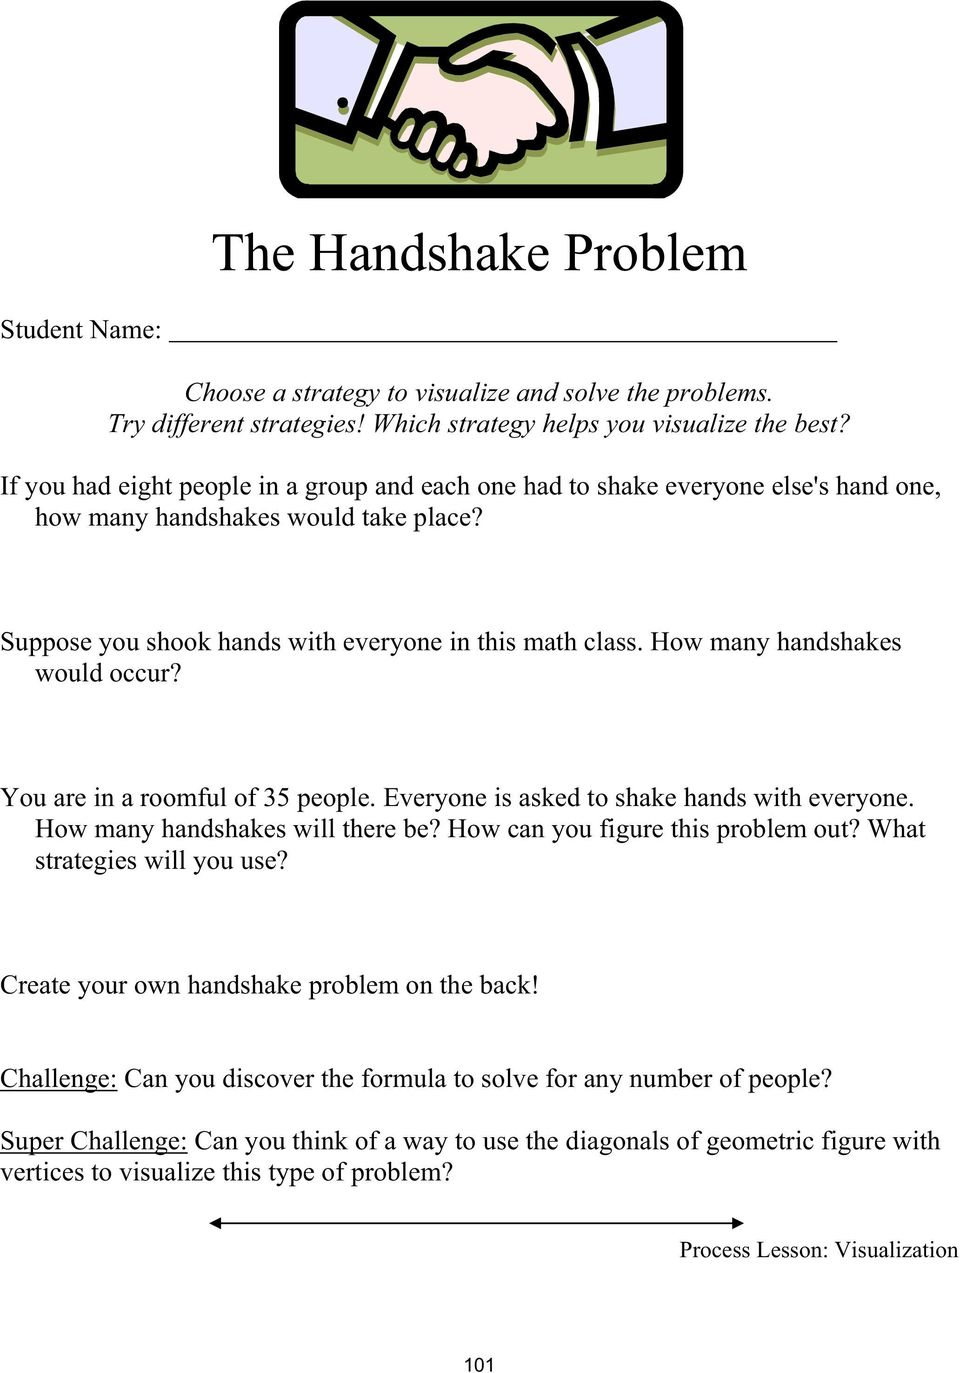 How many handshakes would occur? You are in a roomful of 35 people. Everyone is asked to shake hands with everyone. How many handshakes will there be? How can you figure this problem out?